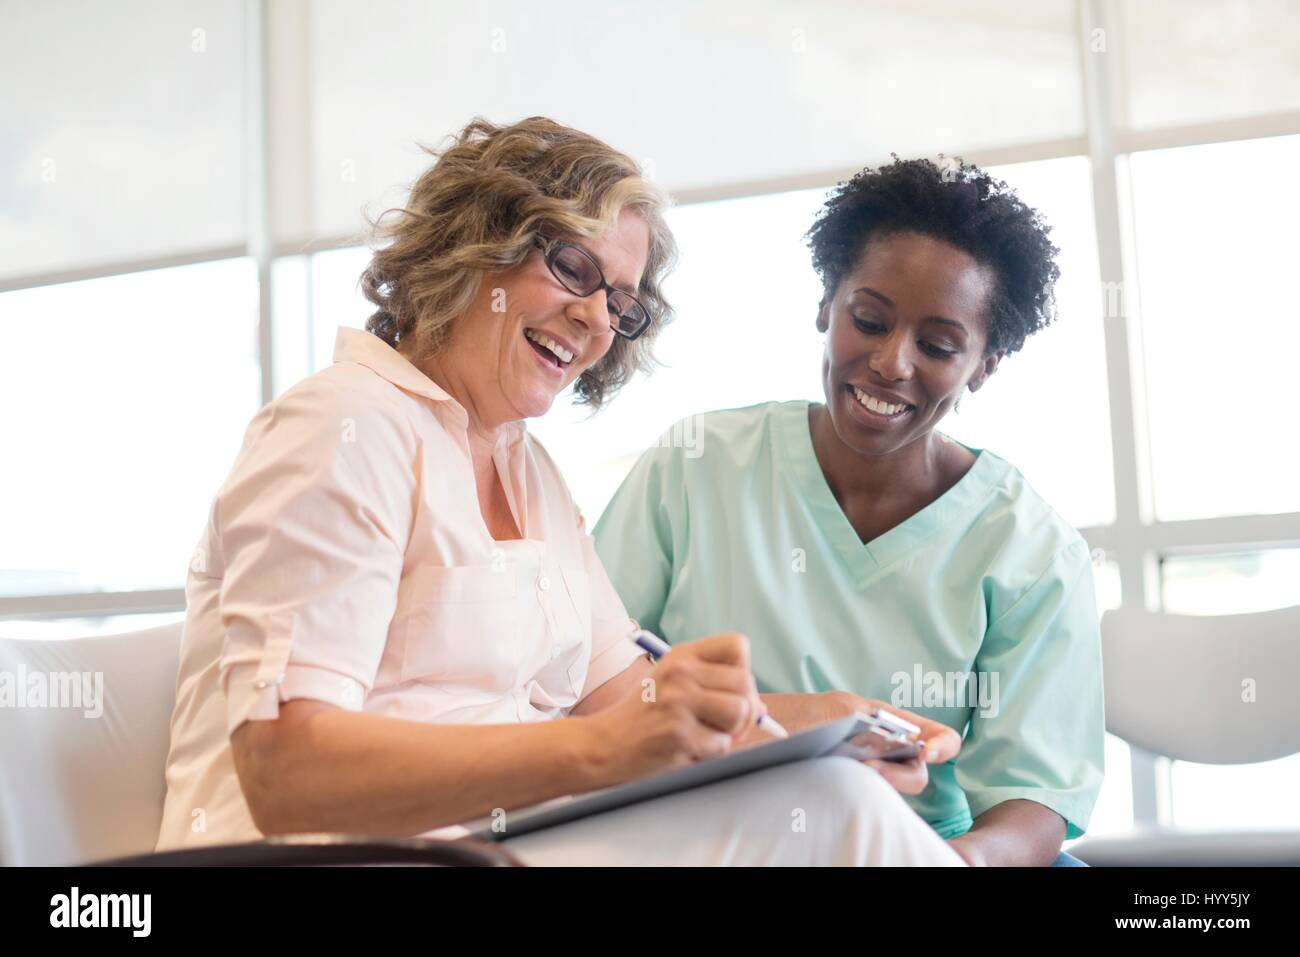 Mature woman filling out form with nurse, smiling. - Stock Image